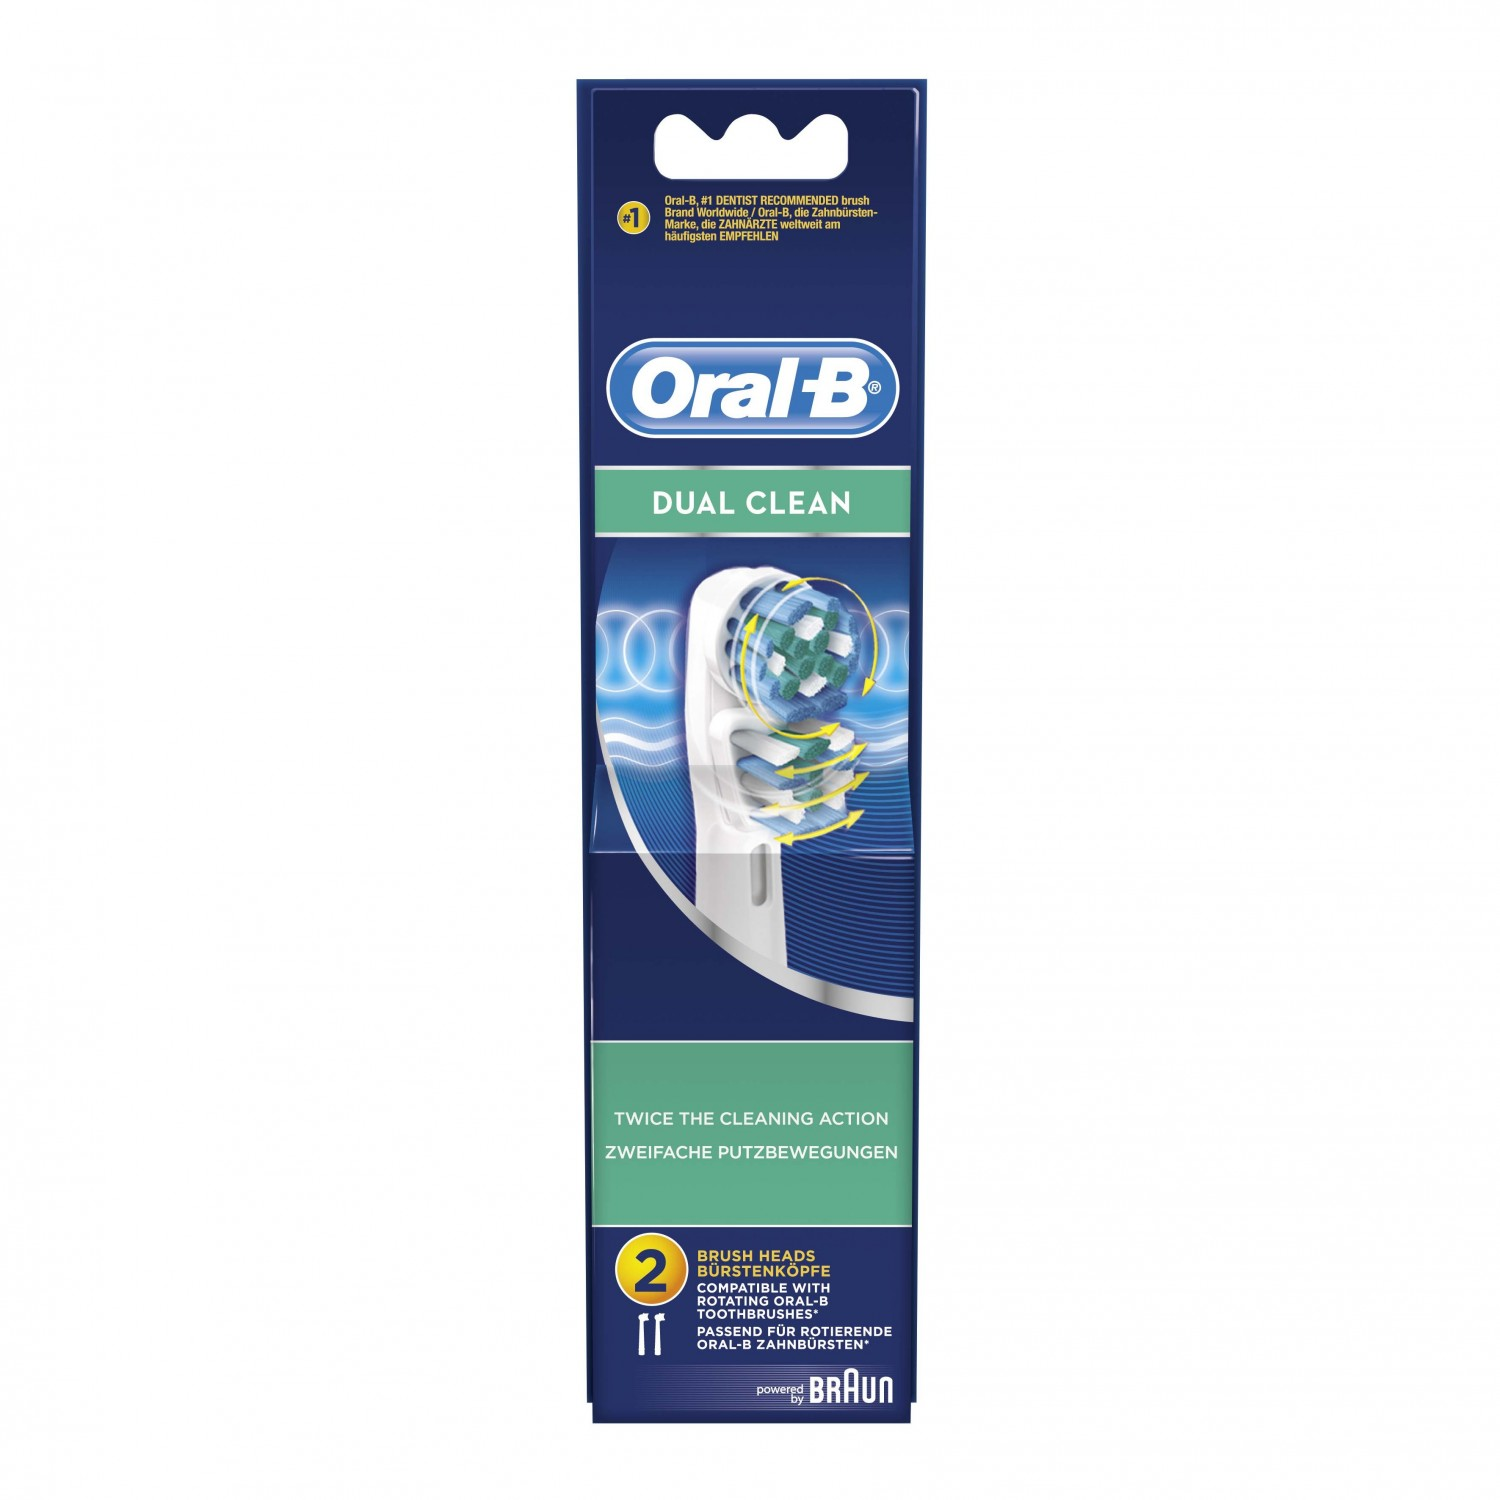 Oral B cepillo electrico dual clean ades 2